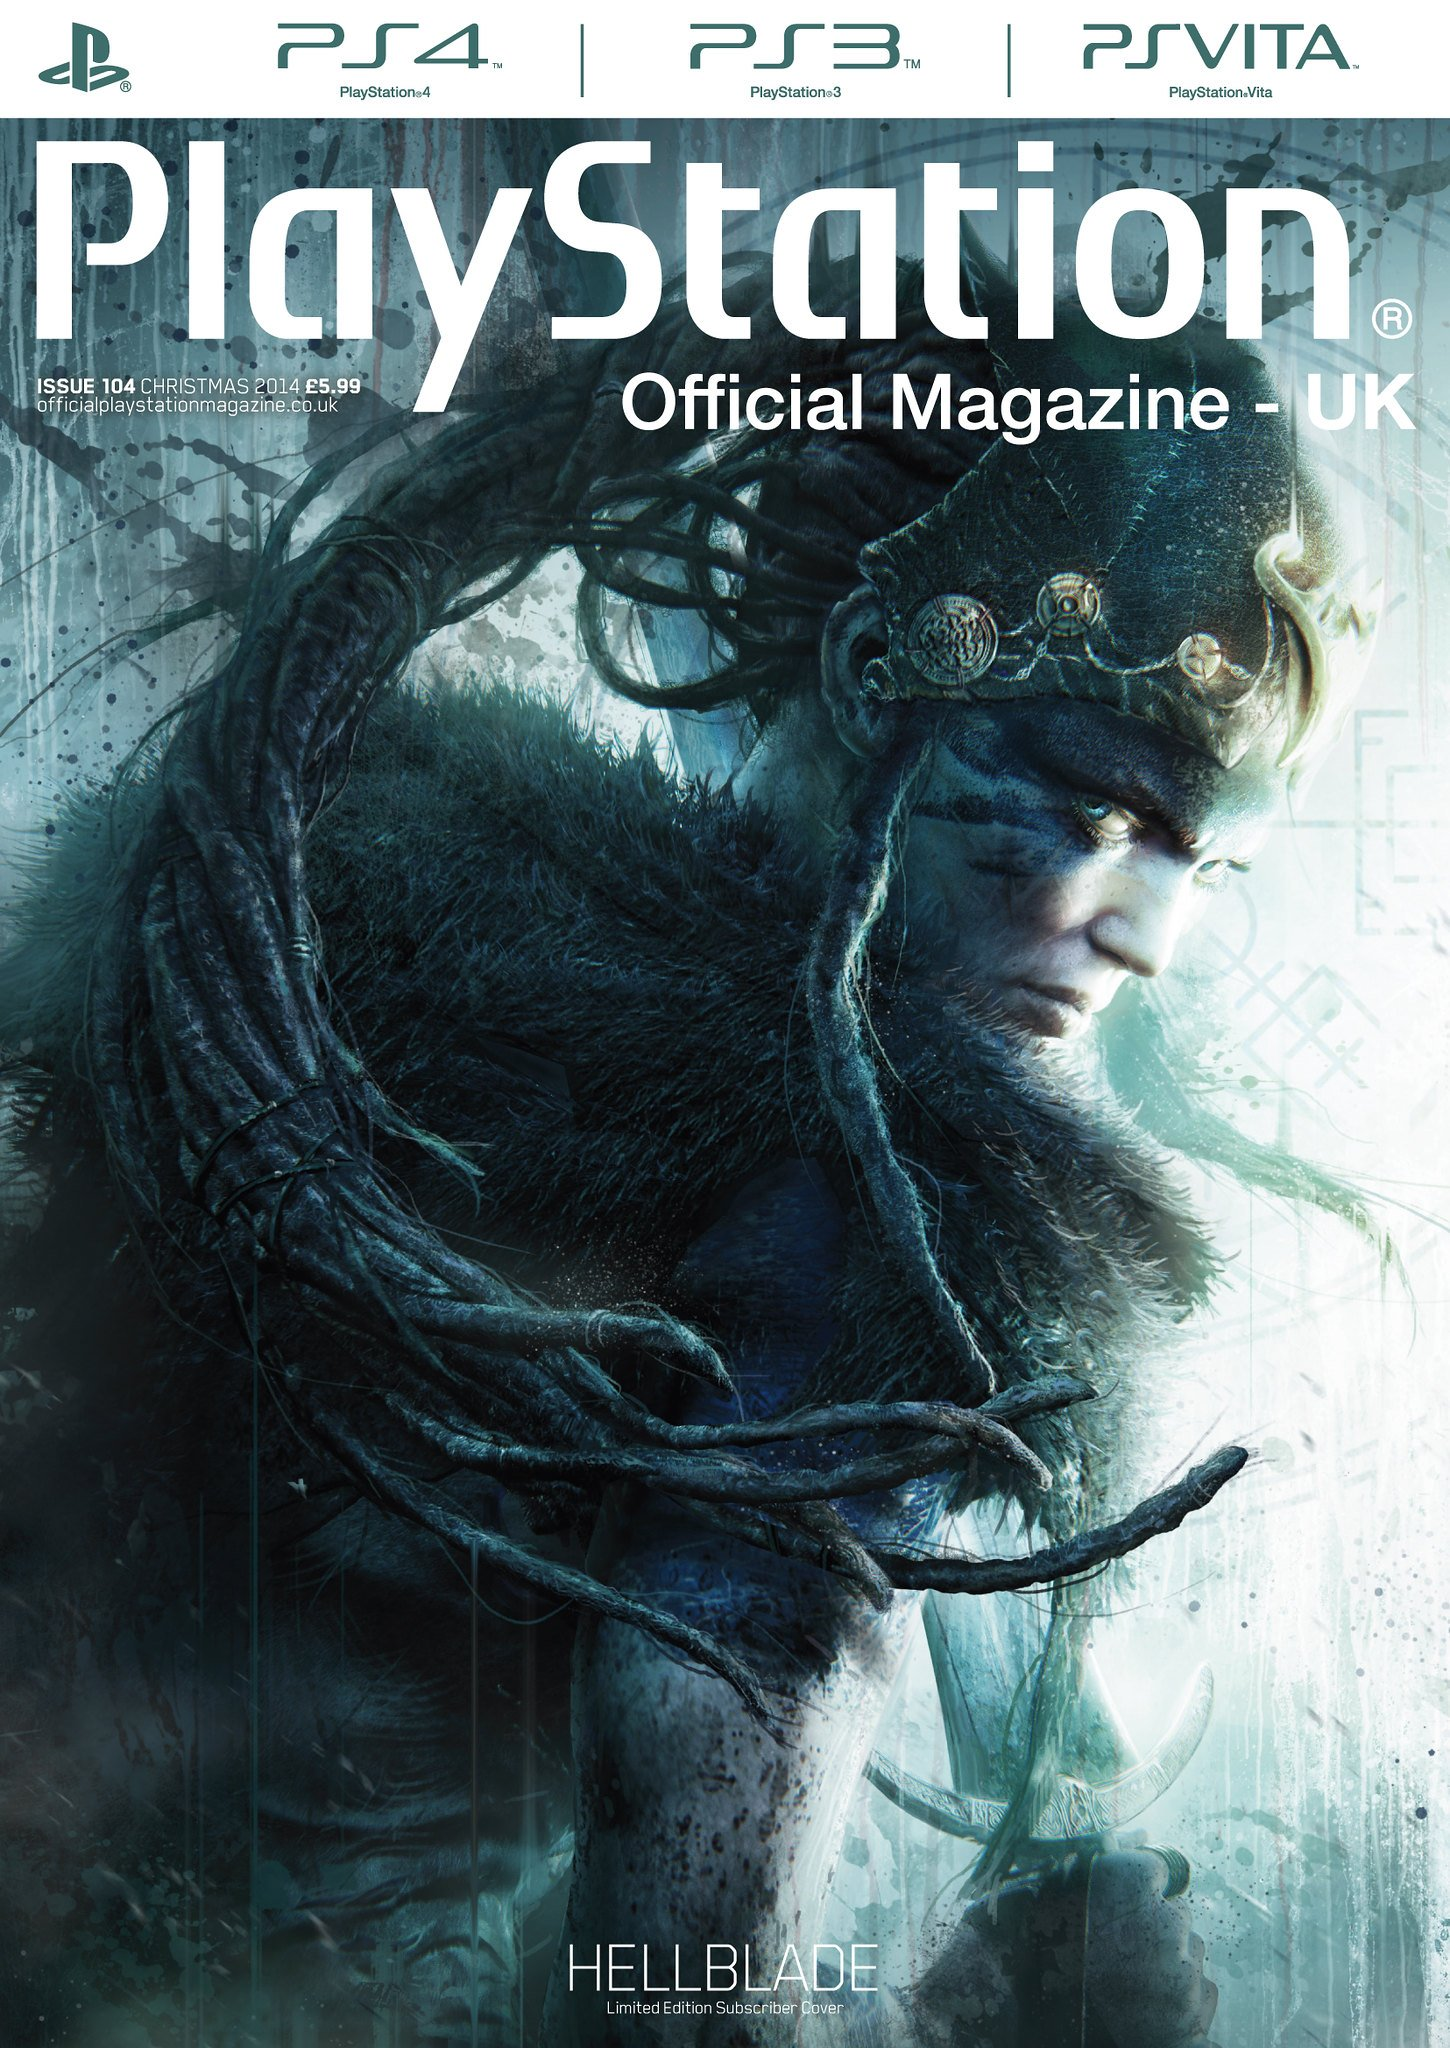 Playstation Official Magazine UK 104 (Christmas 2014) (subscriber edition)